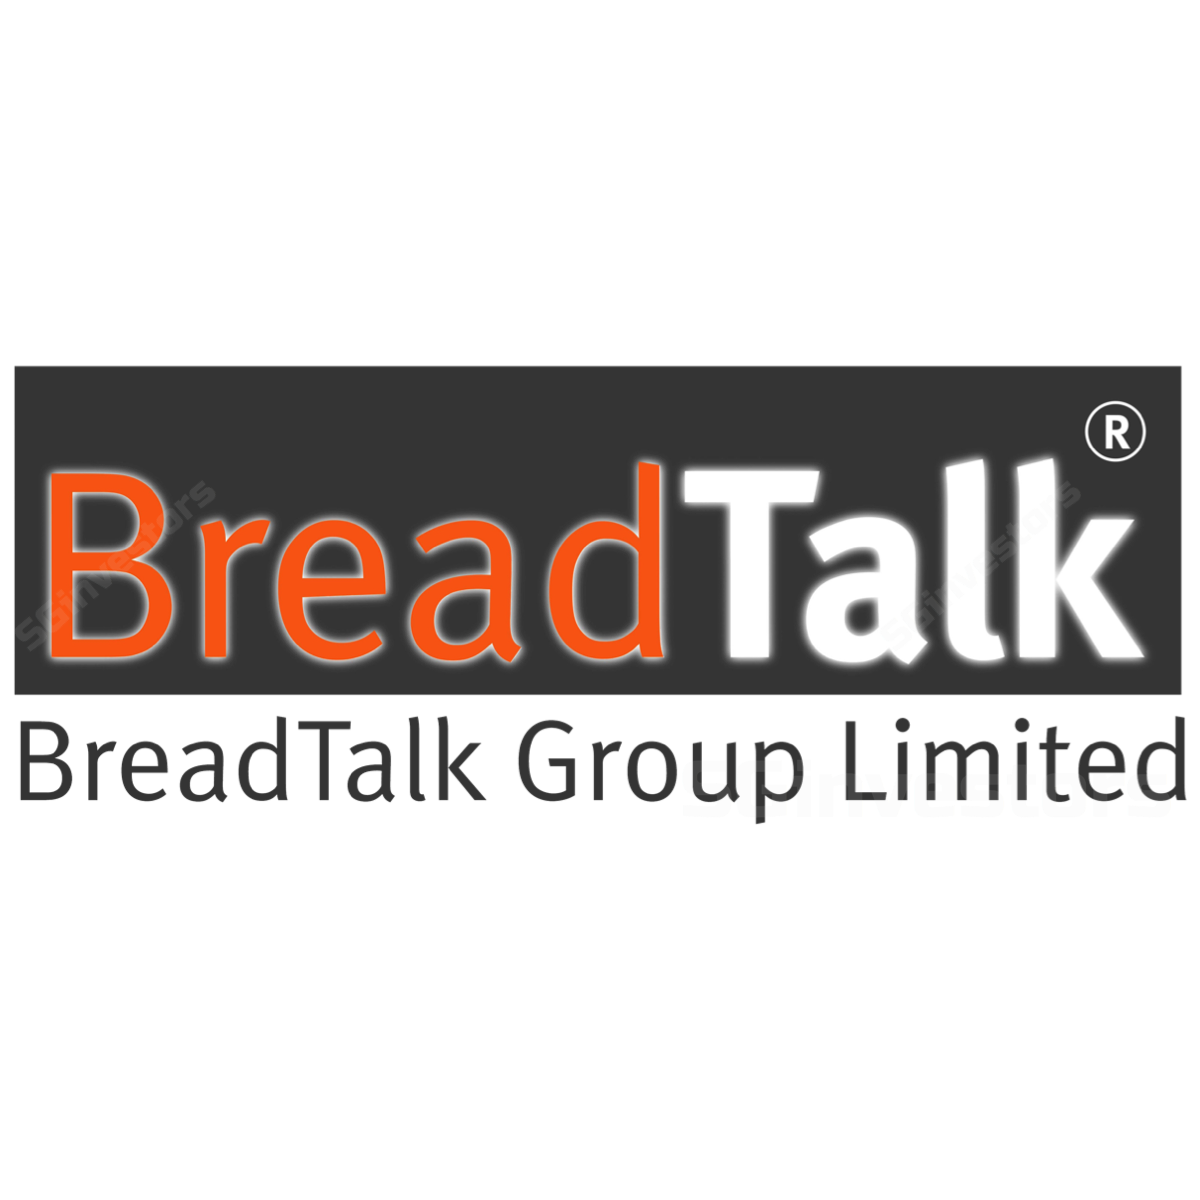 BreadTalk Group Ltd - CGS-CIMB Research 2018-06-22: Bringing You F&b Delights From All Over